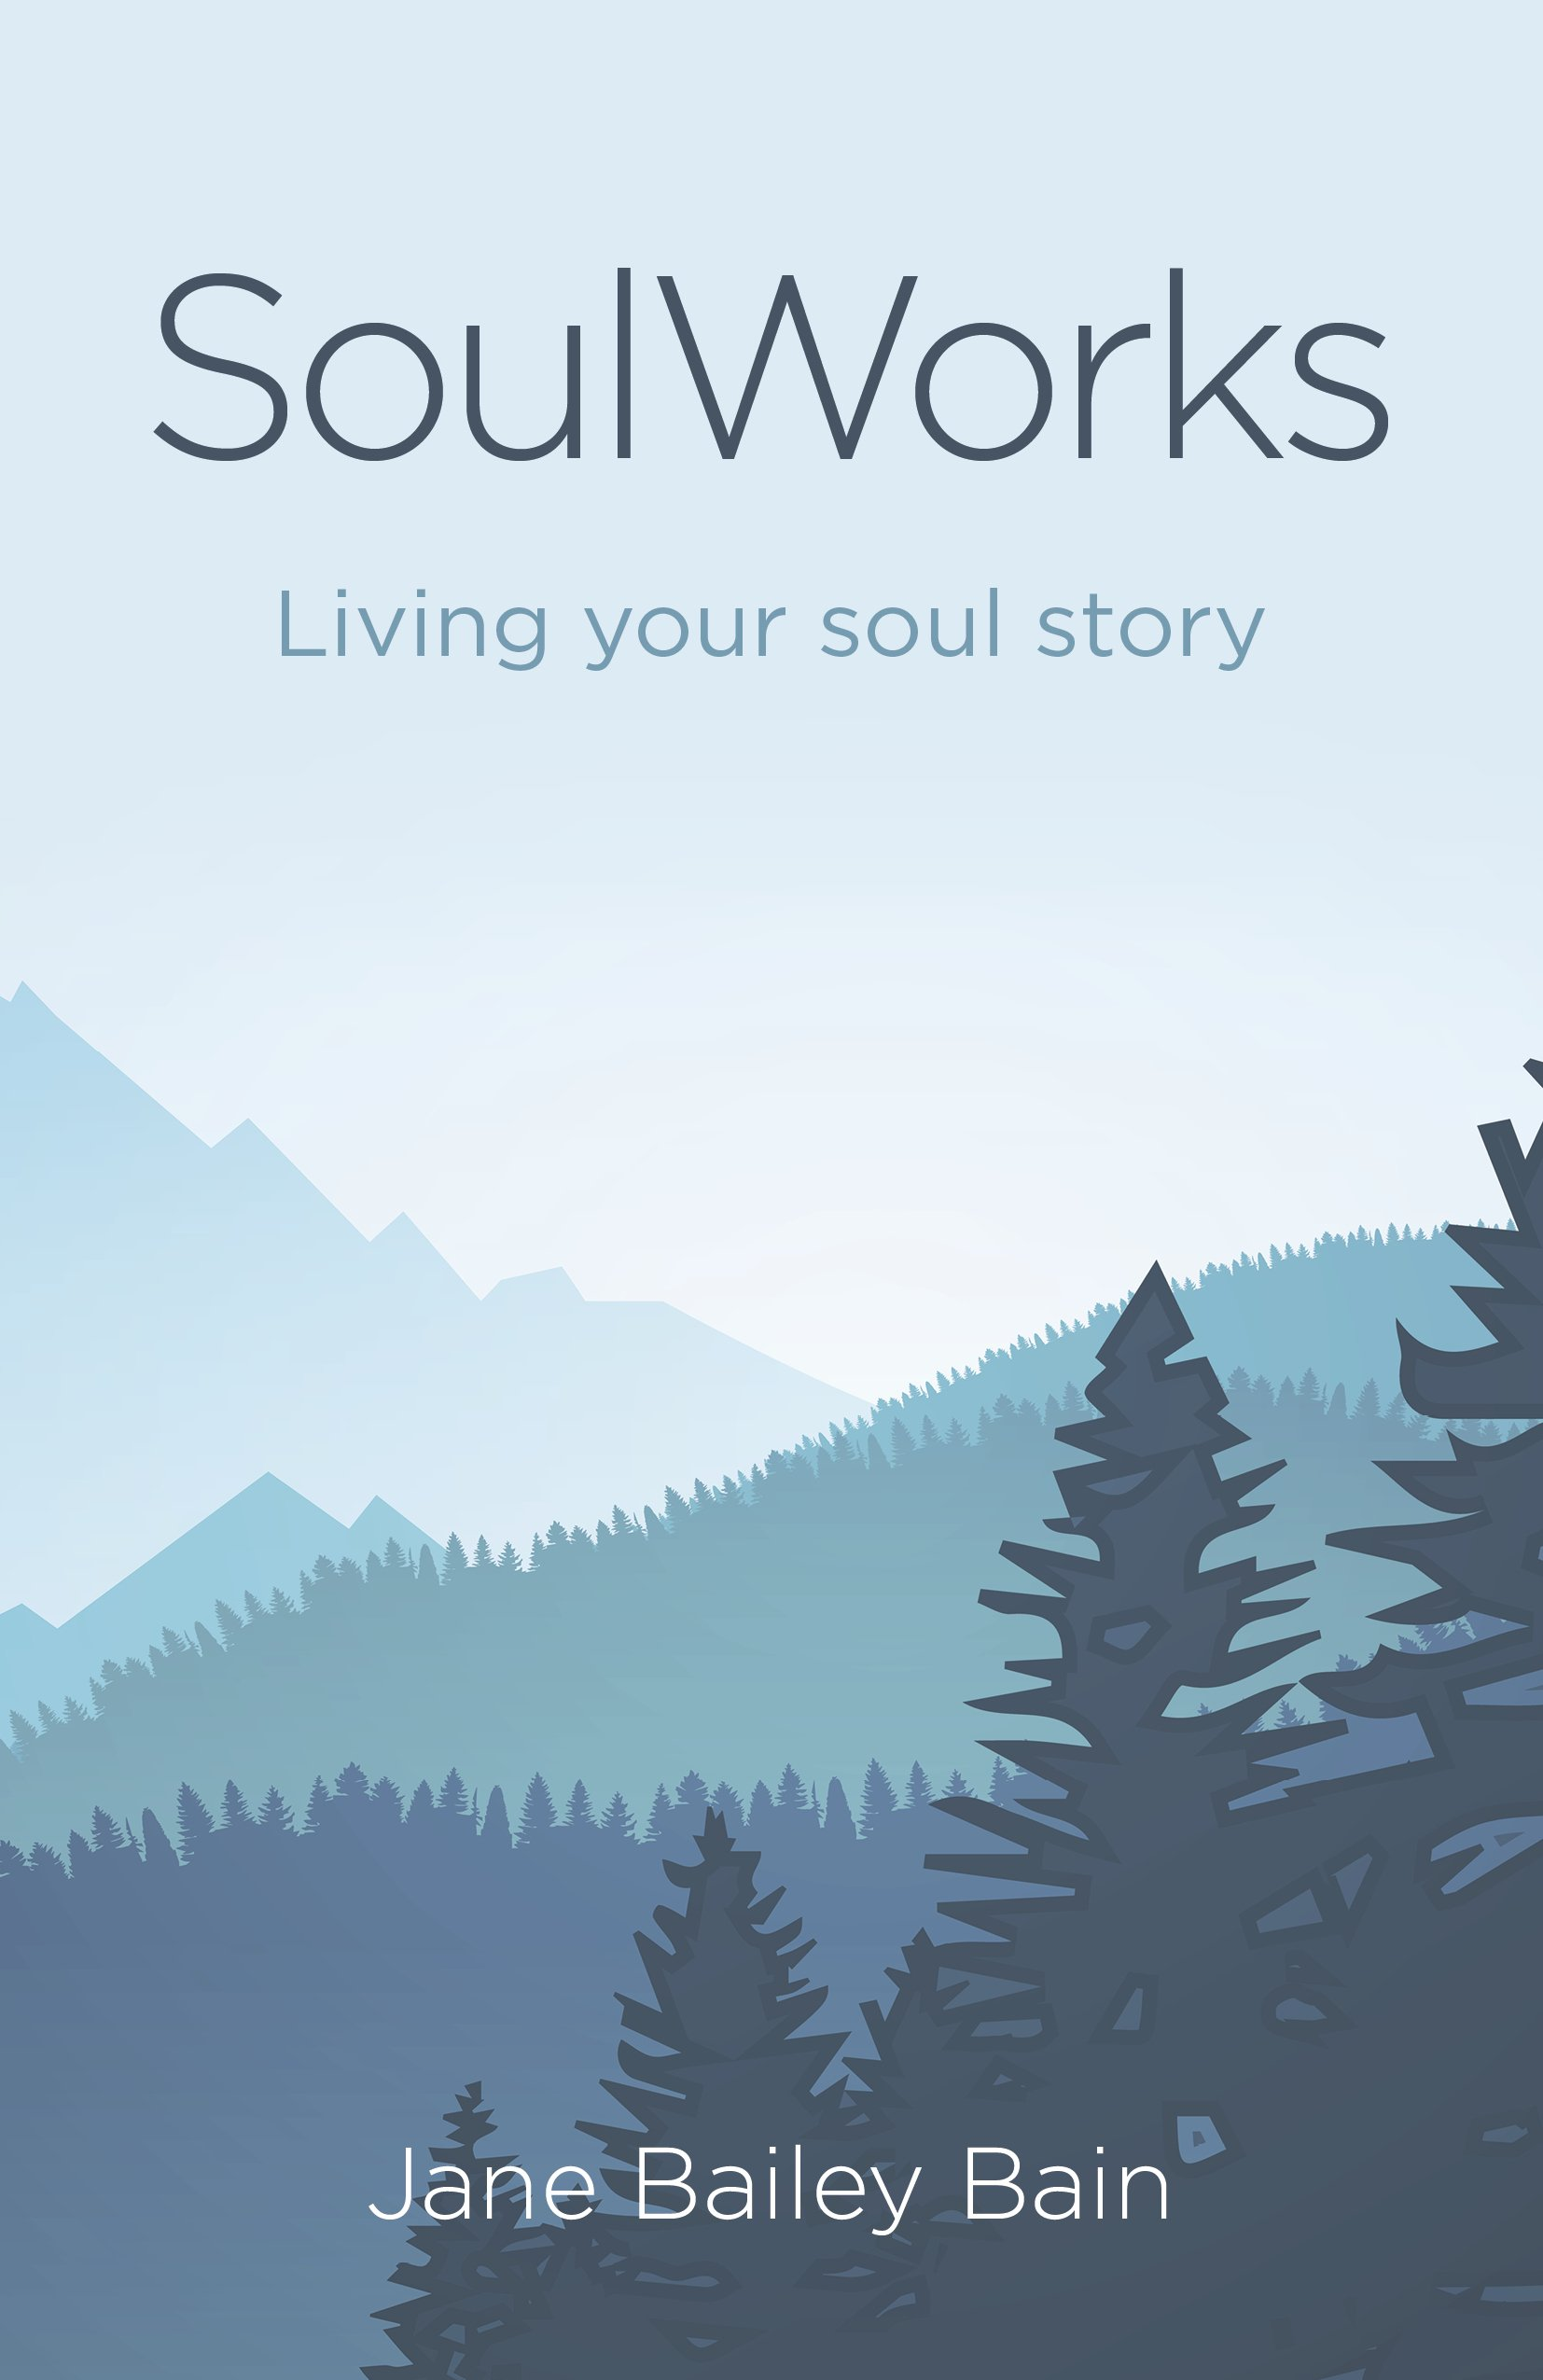 Soulworks: Living Your Soul Story: Jane Bailey Bain: 9781785357138 ...